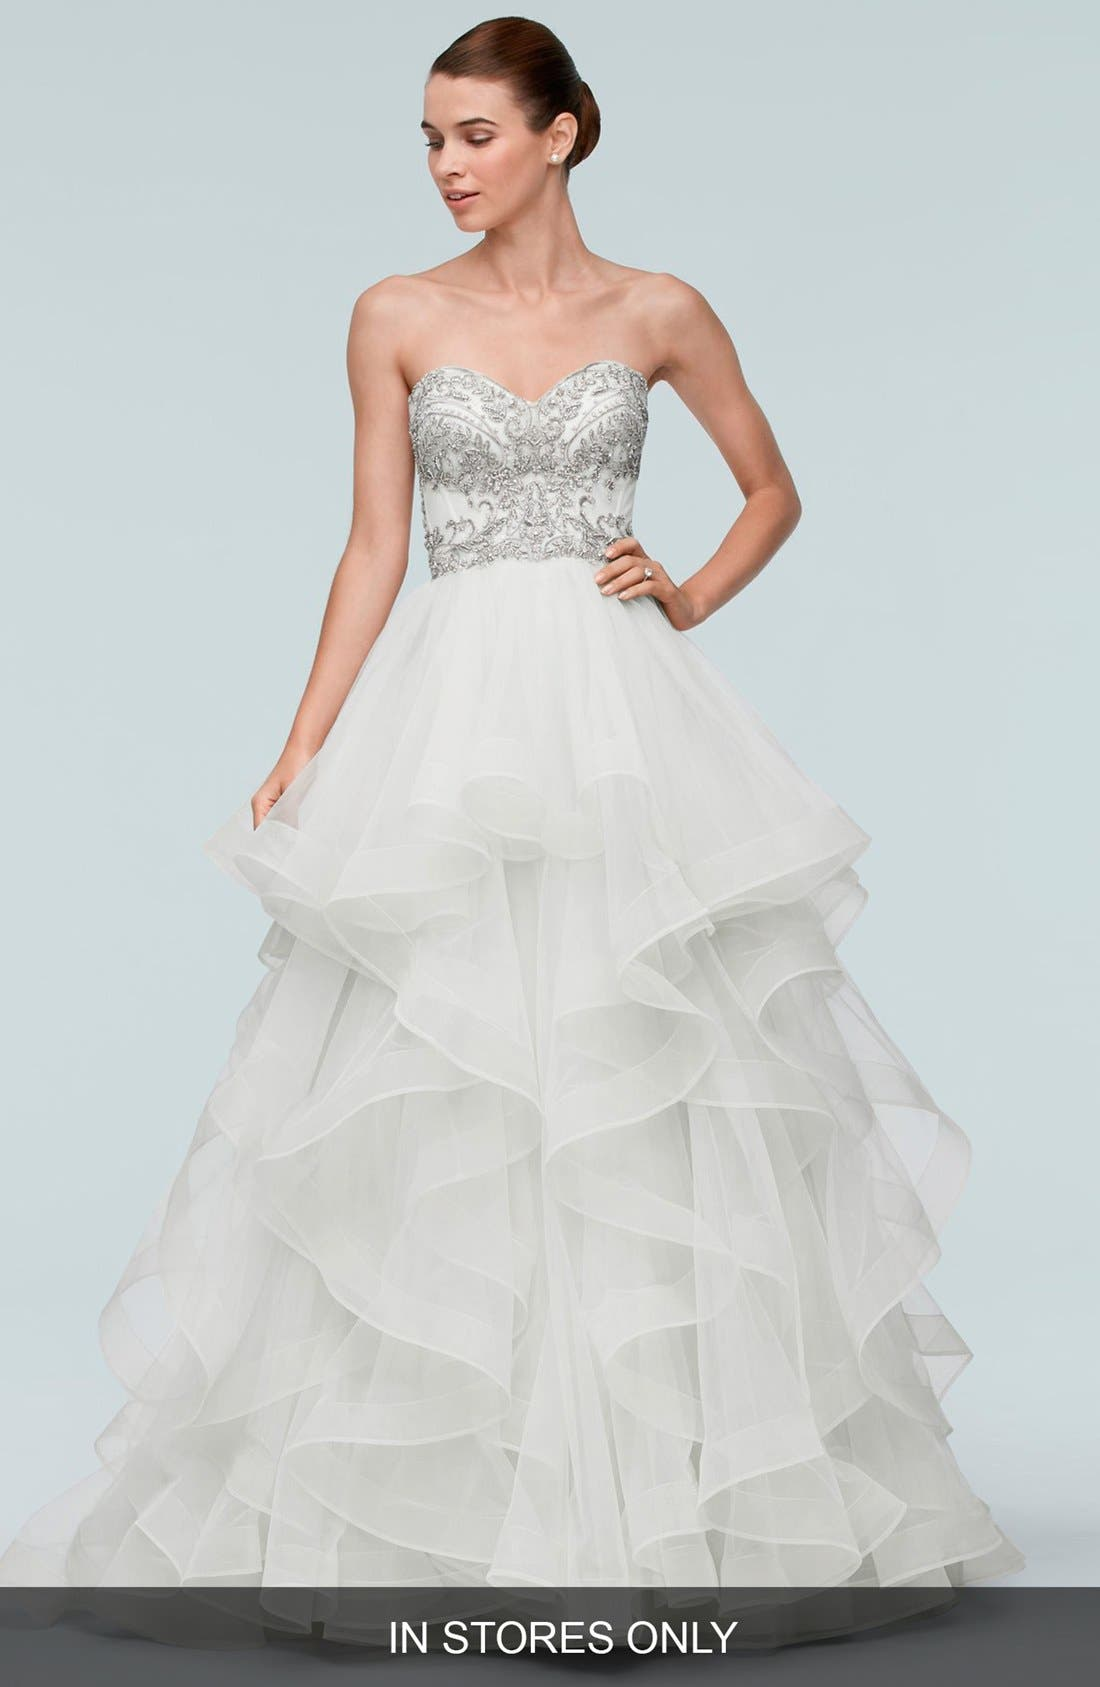 Meri Beaded Strapless Layered Tulle Gown,                         Main,                         color, 907